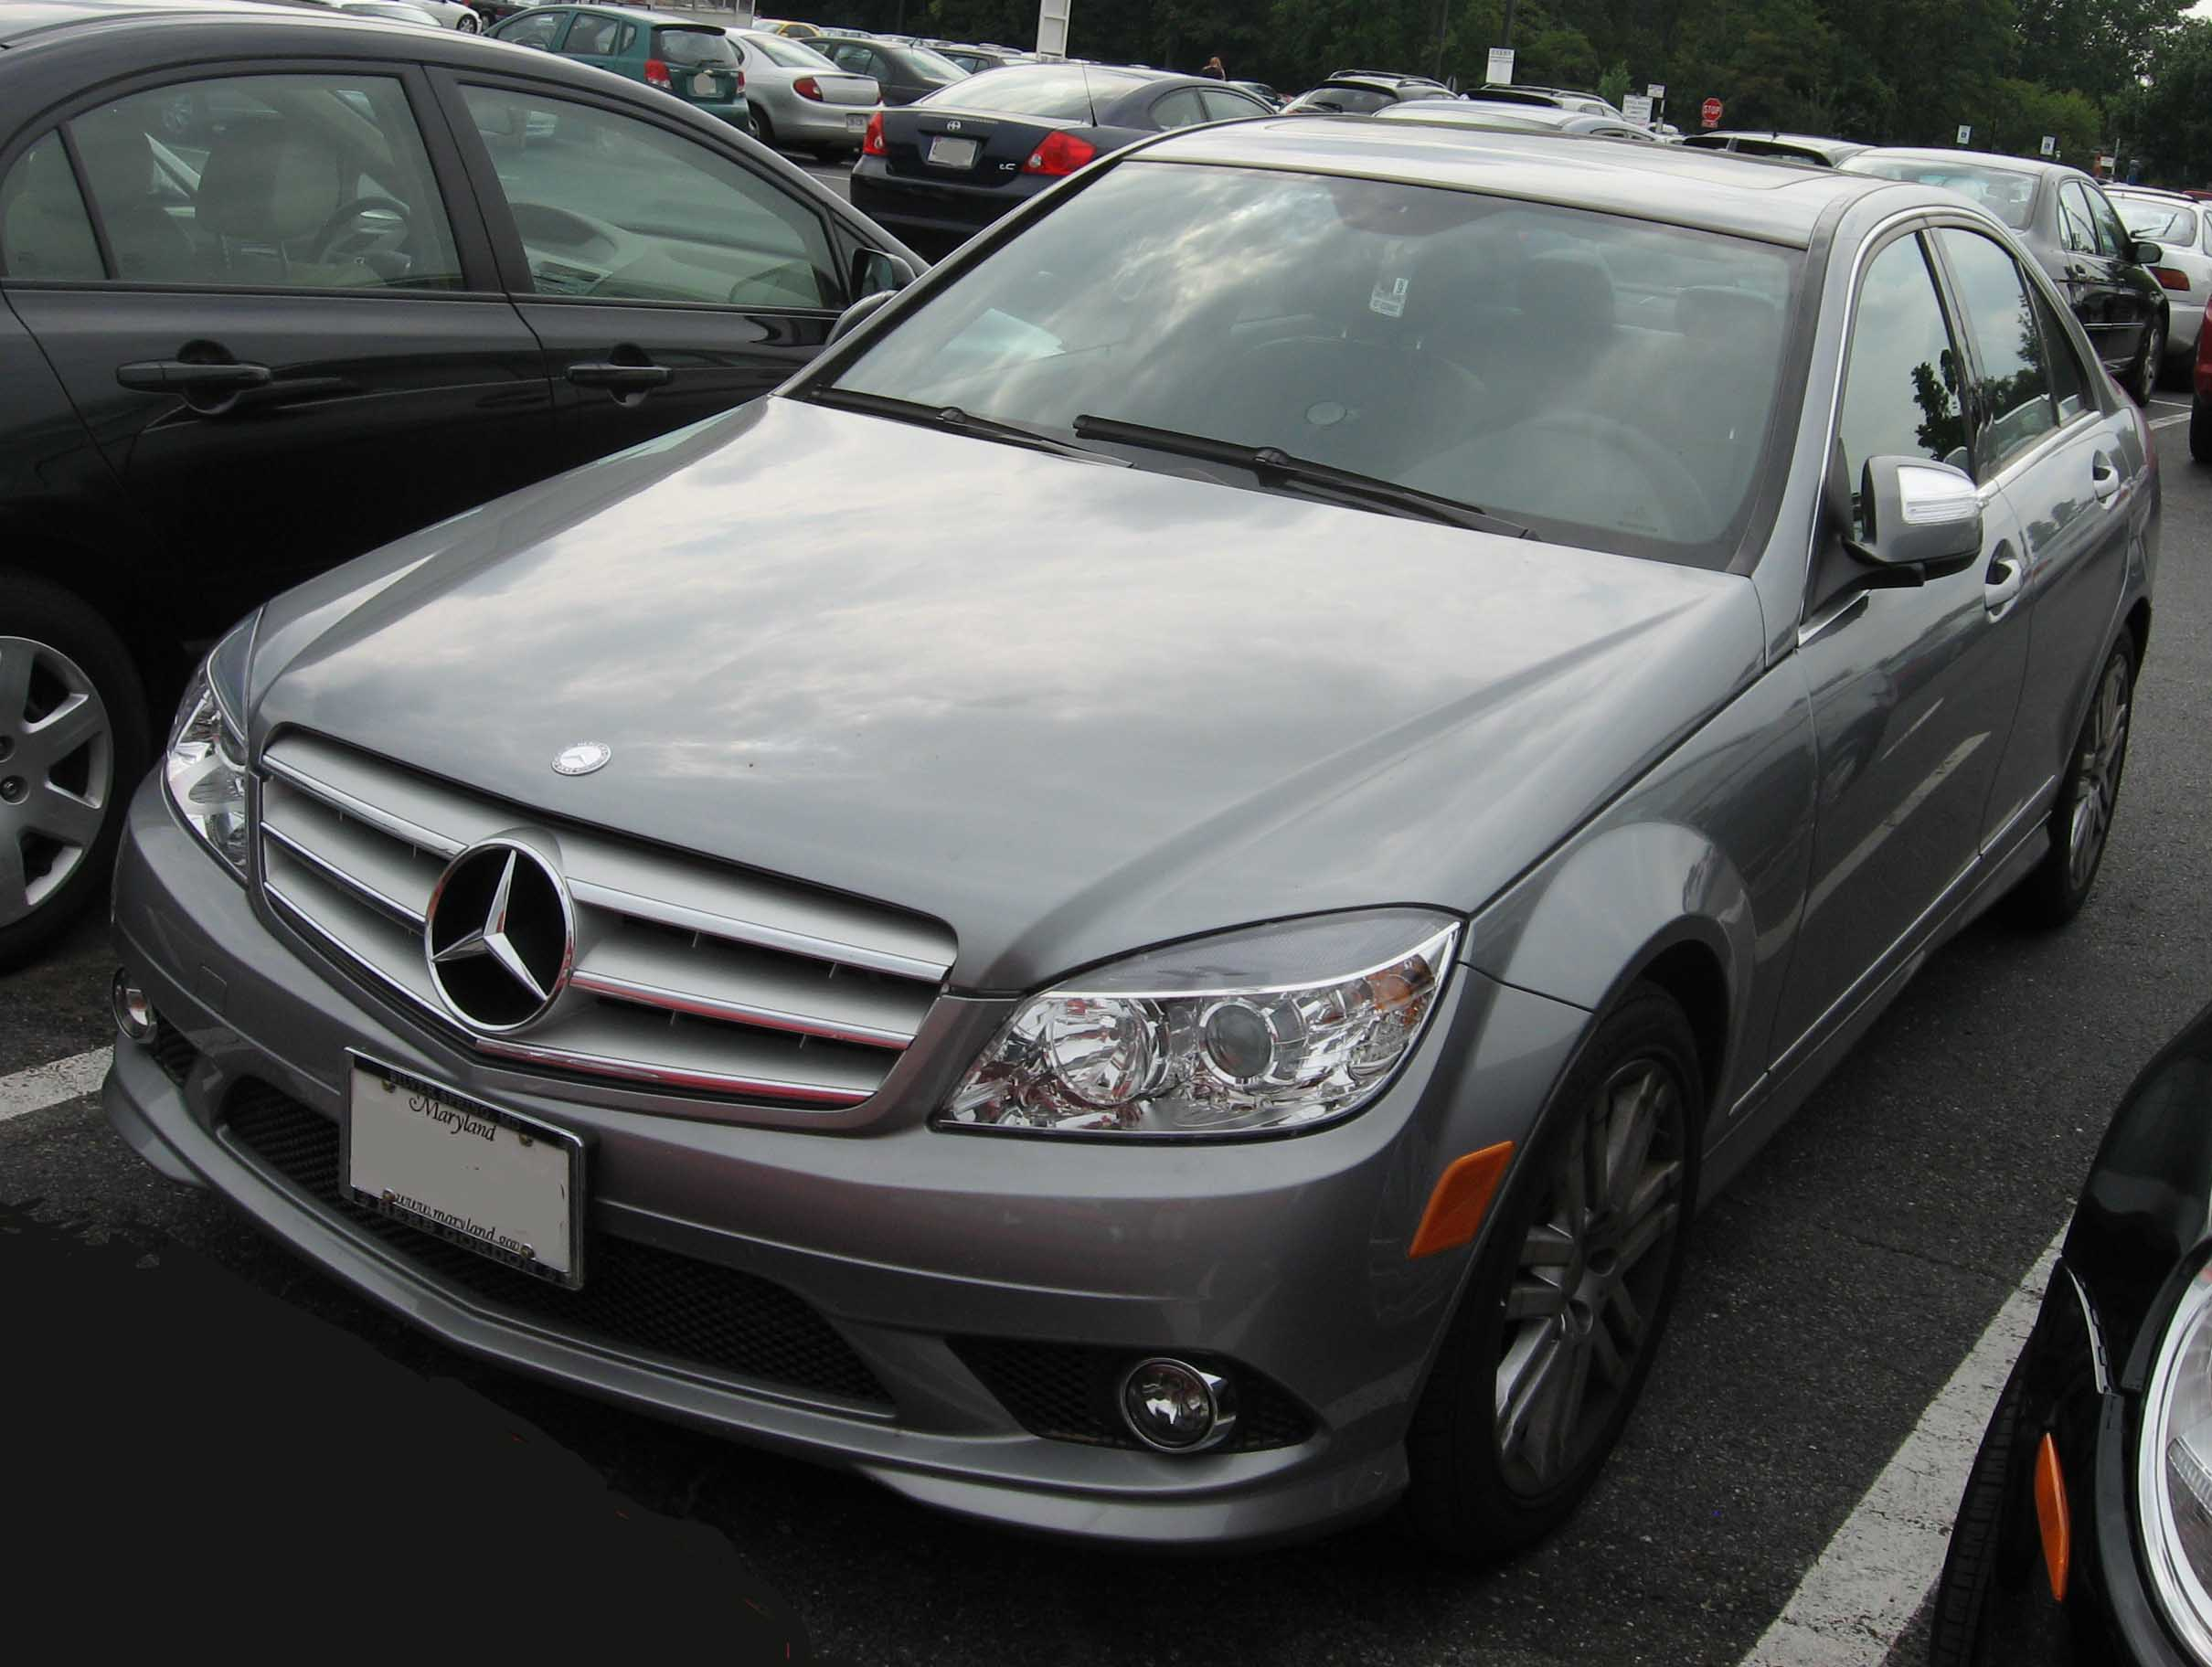 File:2008-Mercedes-Benz-C300.jpg